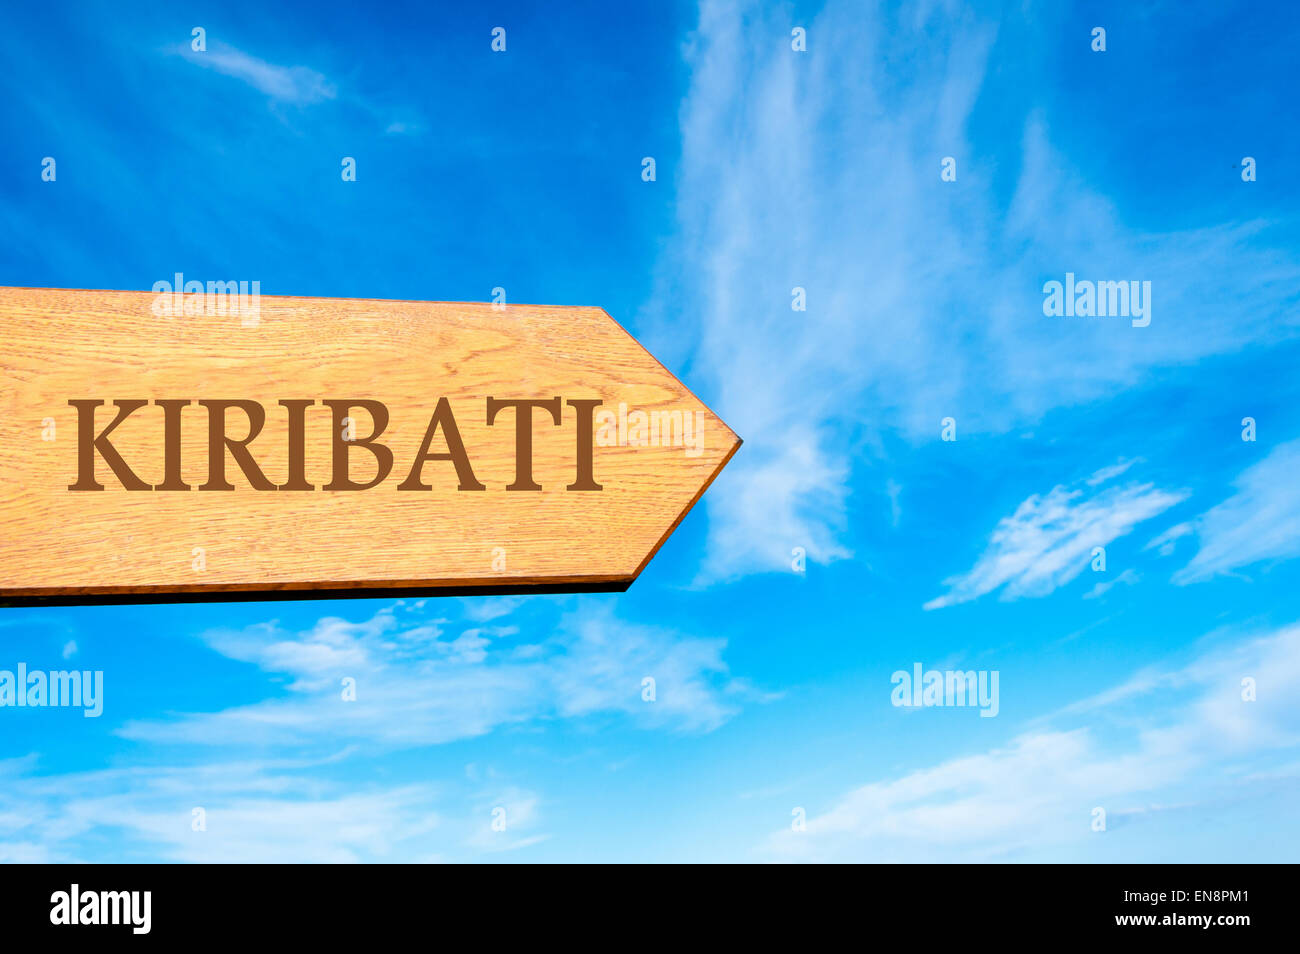 Wooden arrow sign pointing destination KIRIBATI against clear blue sky with copy space available. Travel destination - Stock Image